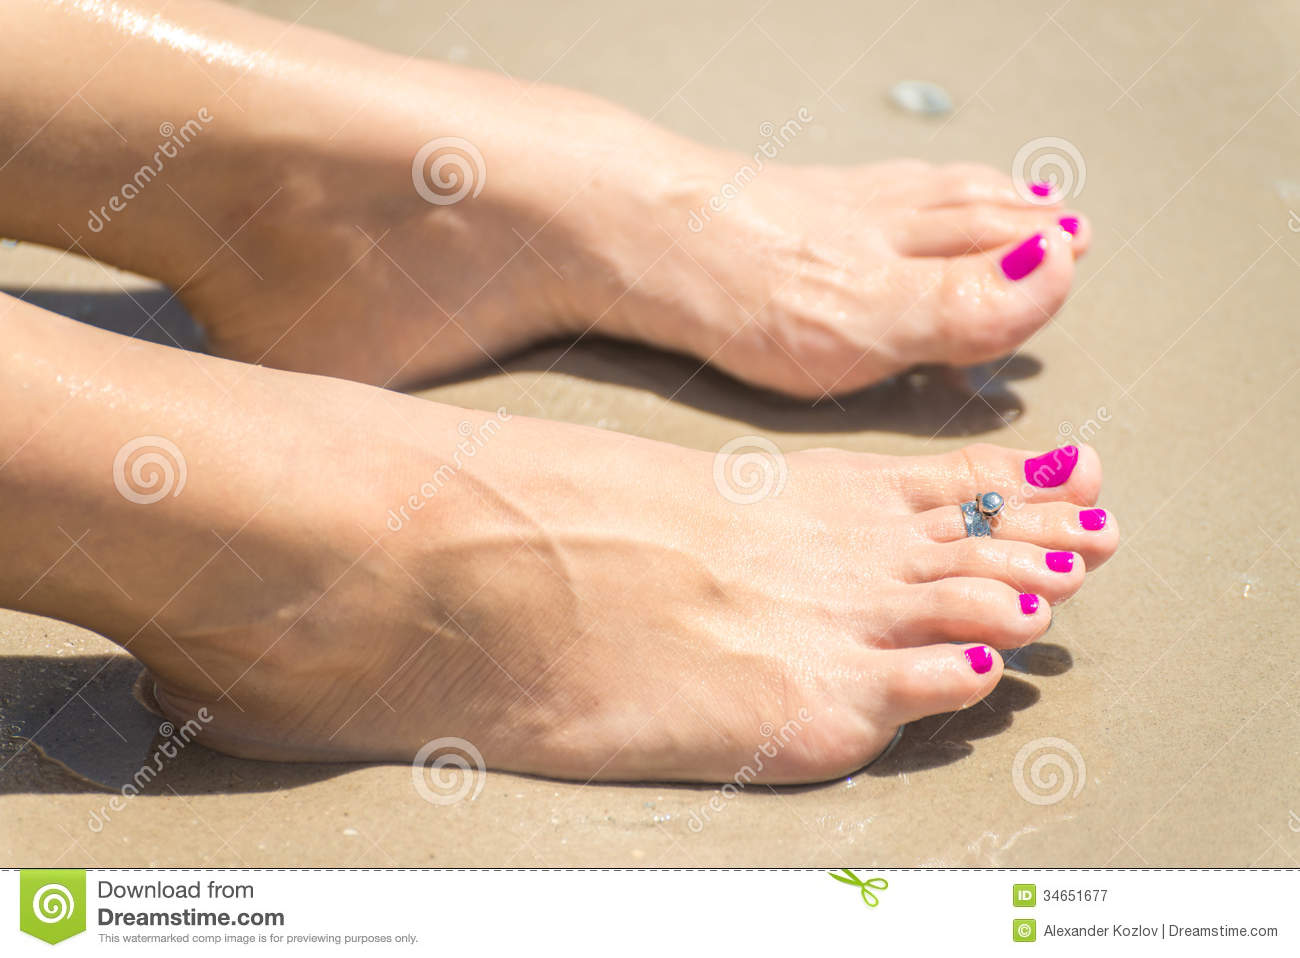 Woman S Foots With A Ring On A Toe Royalty Free Stock Photography Image 34651677